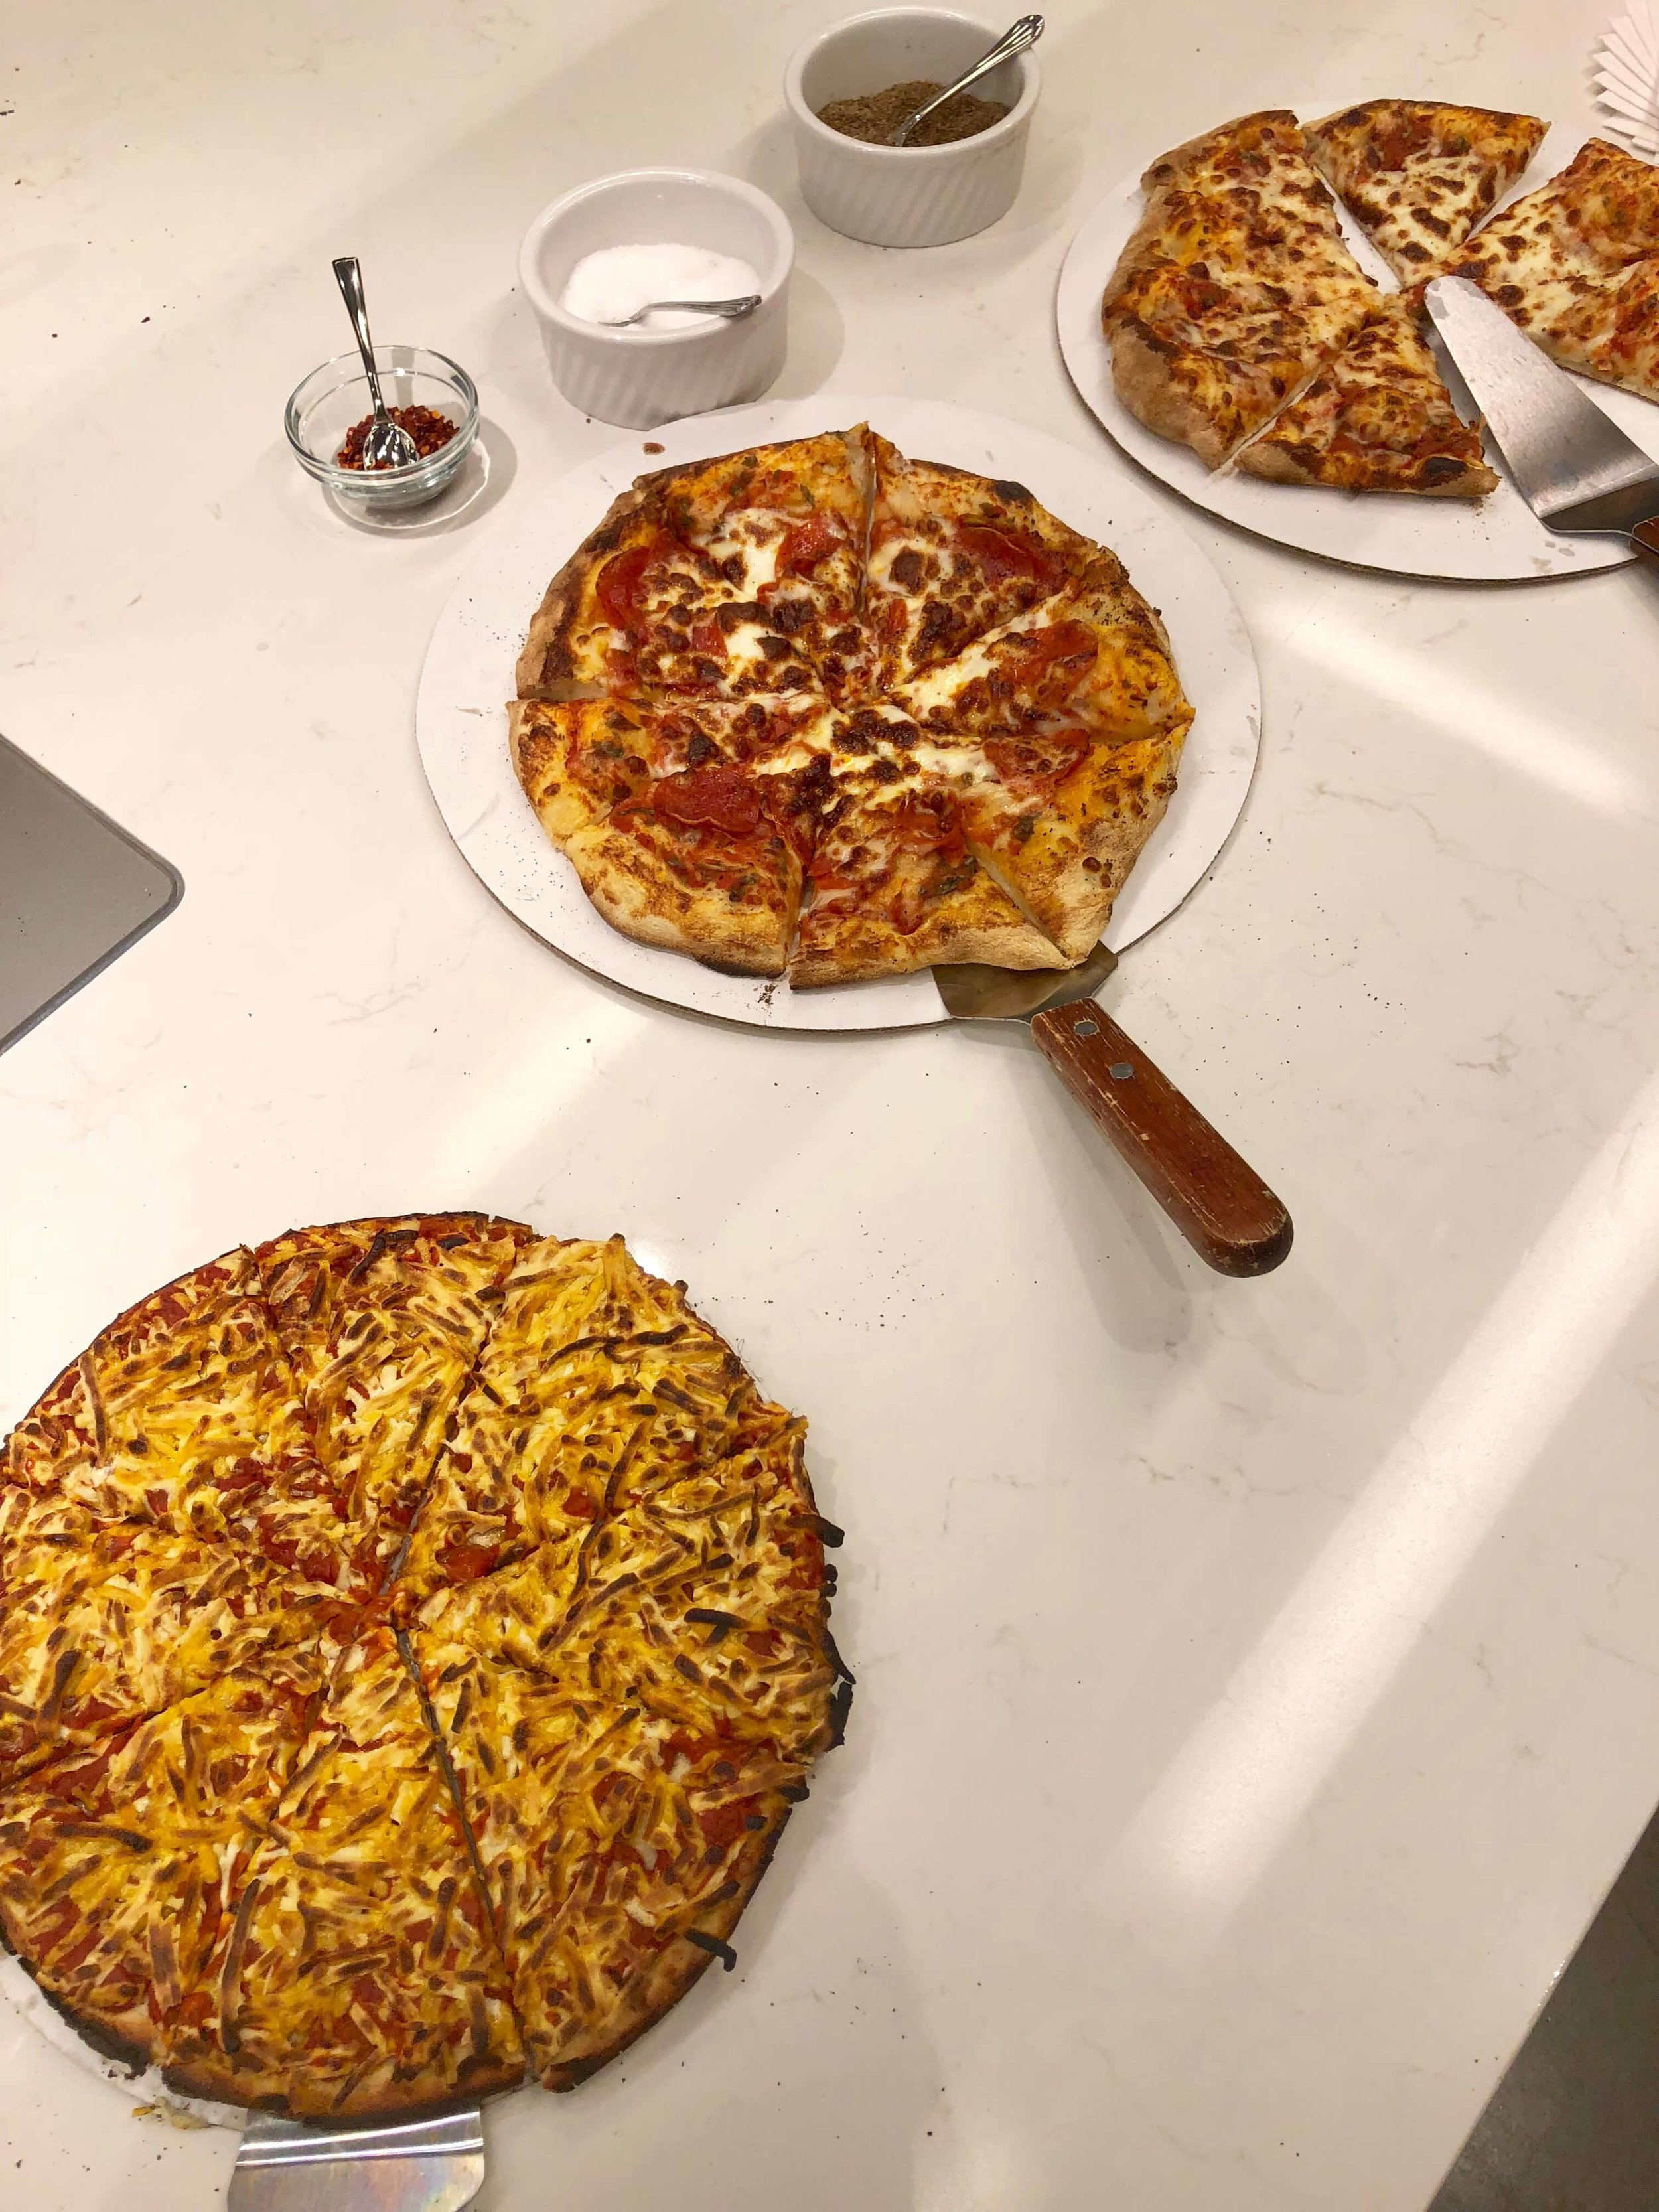 Cooking with a chef at Monogram Appliances showroom #monogramappliances #pizzaoven #indoorpizzaoven